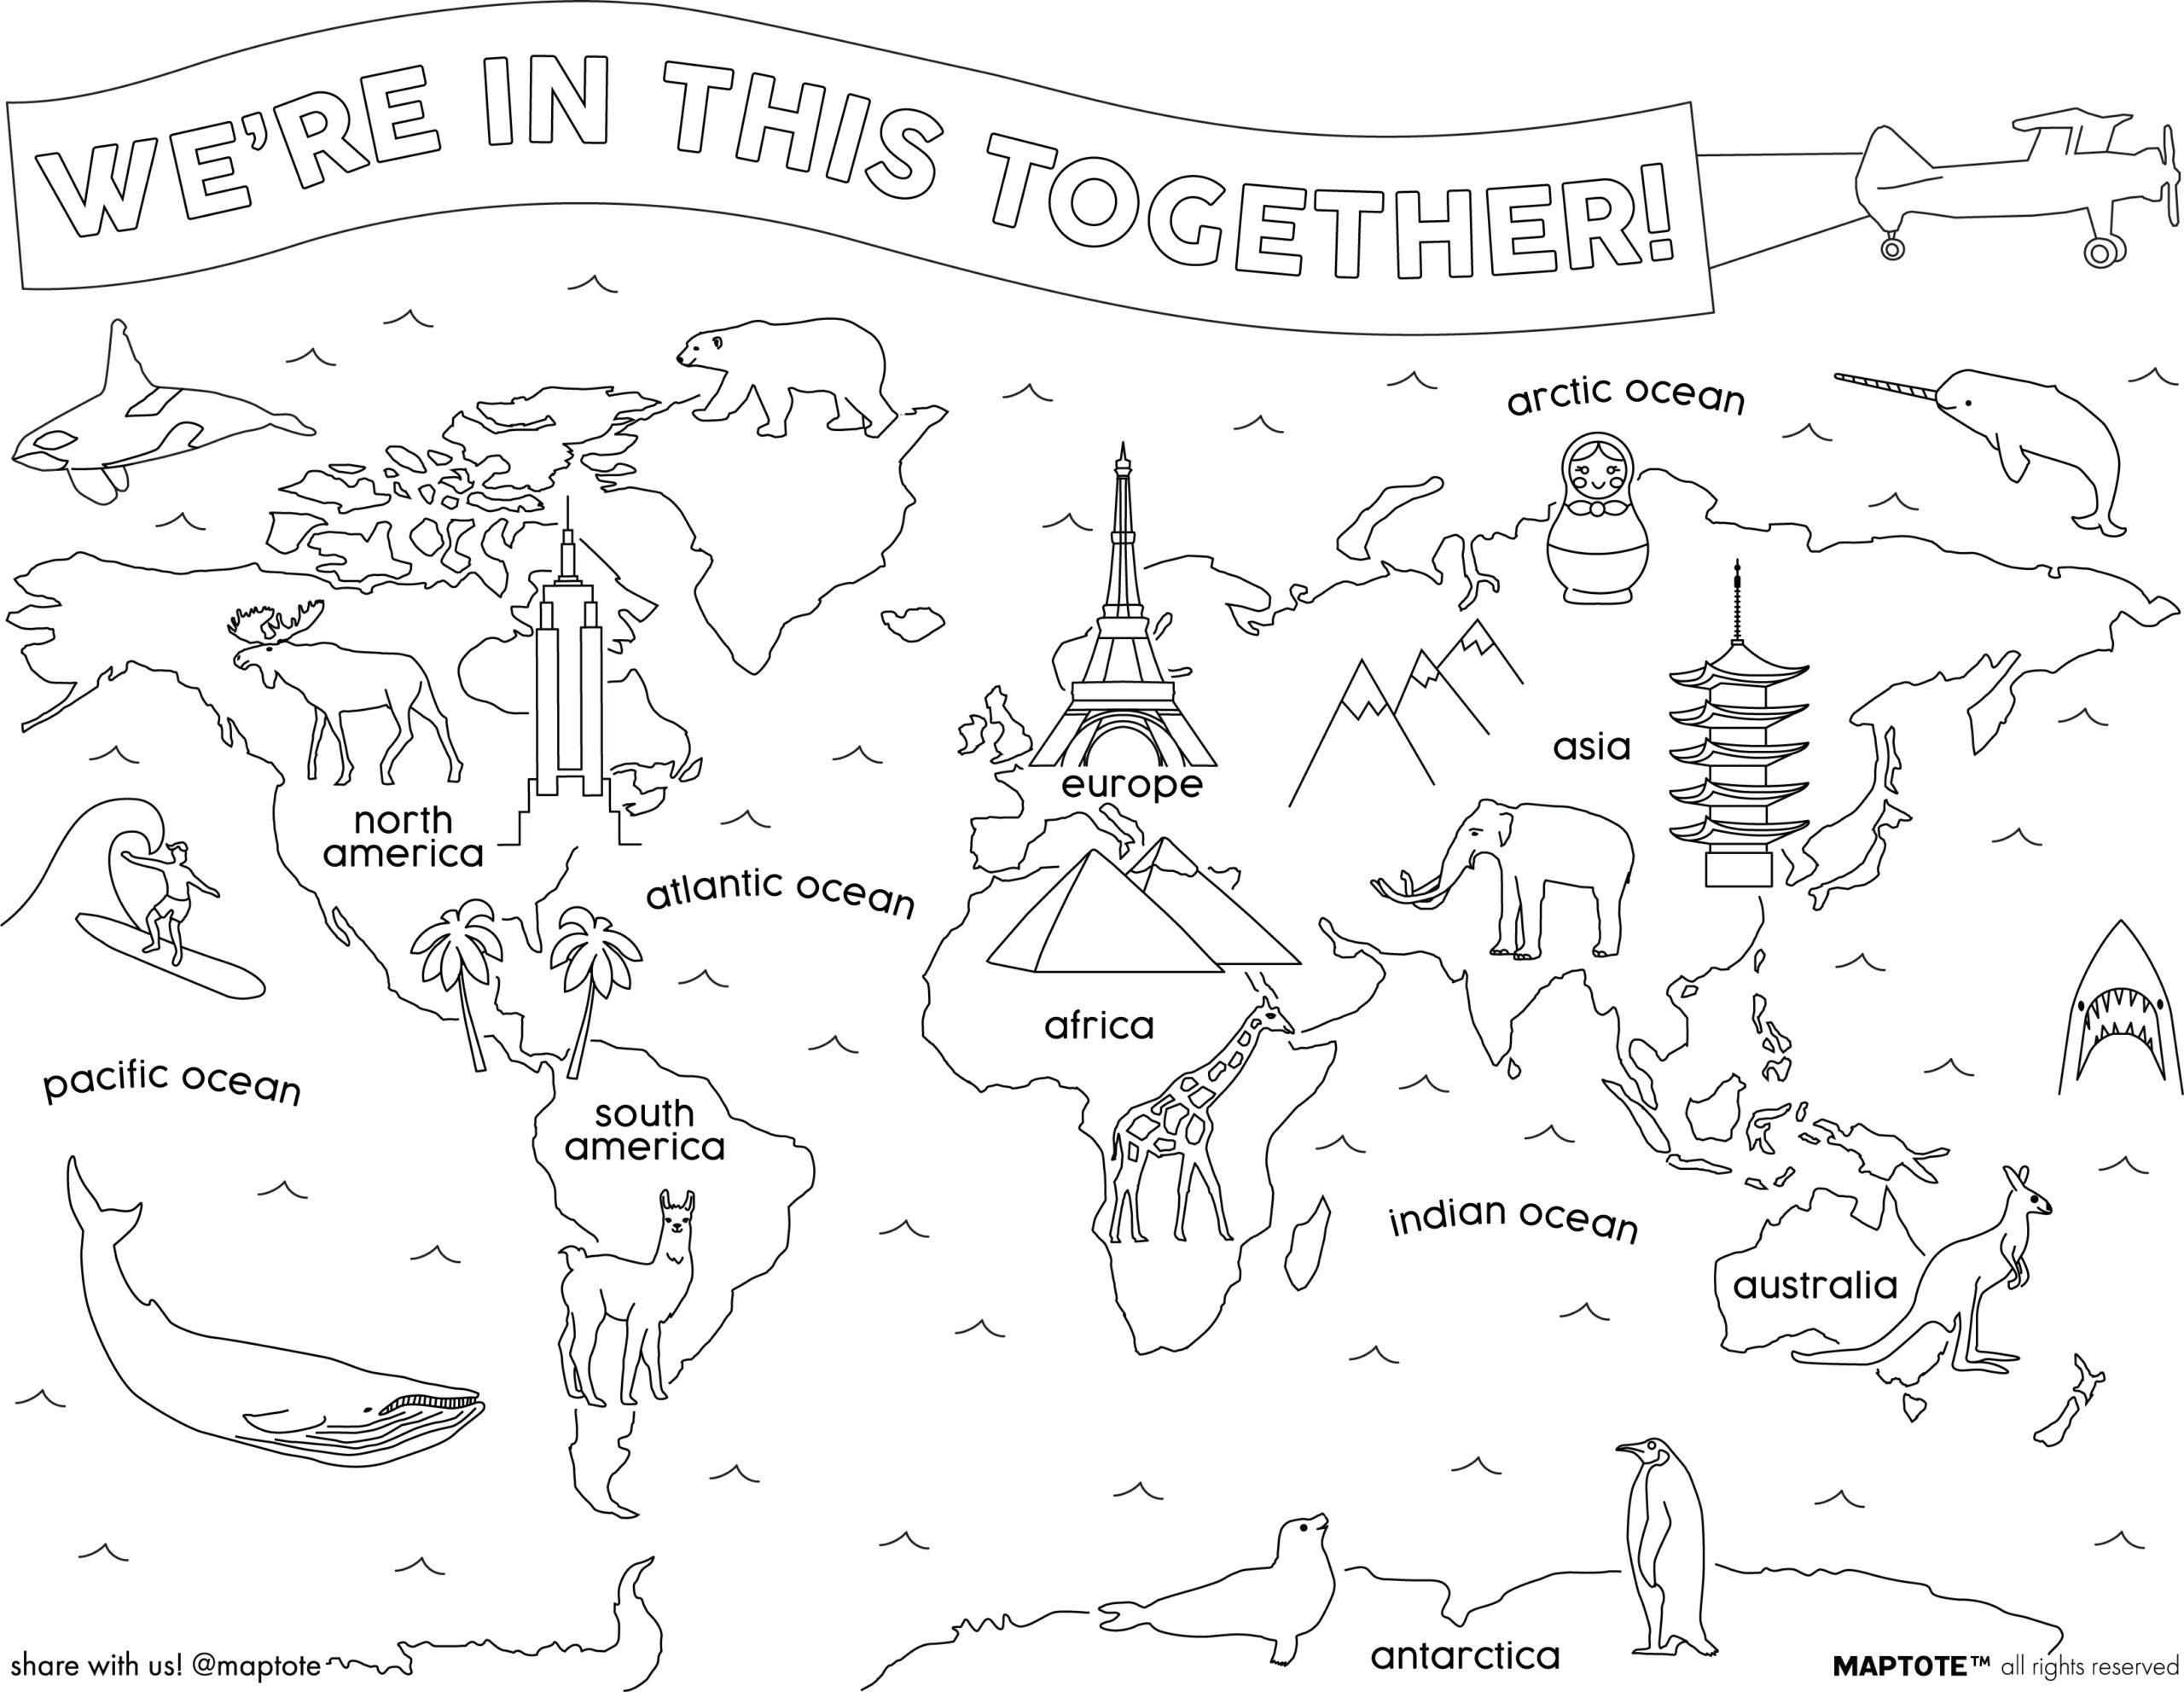 free coloring card downloads maptote worldmap coloringsheet scaled color stick calendars coloring pages Antarctica Coloring Page